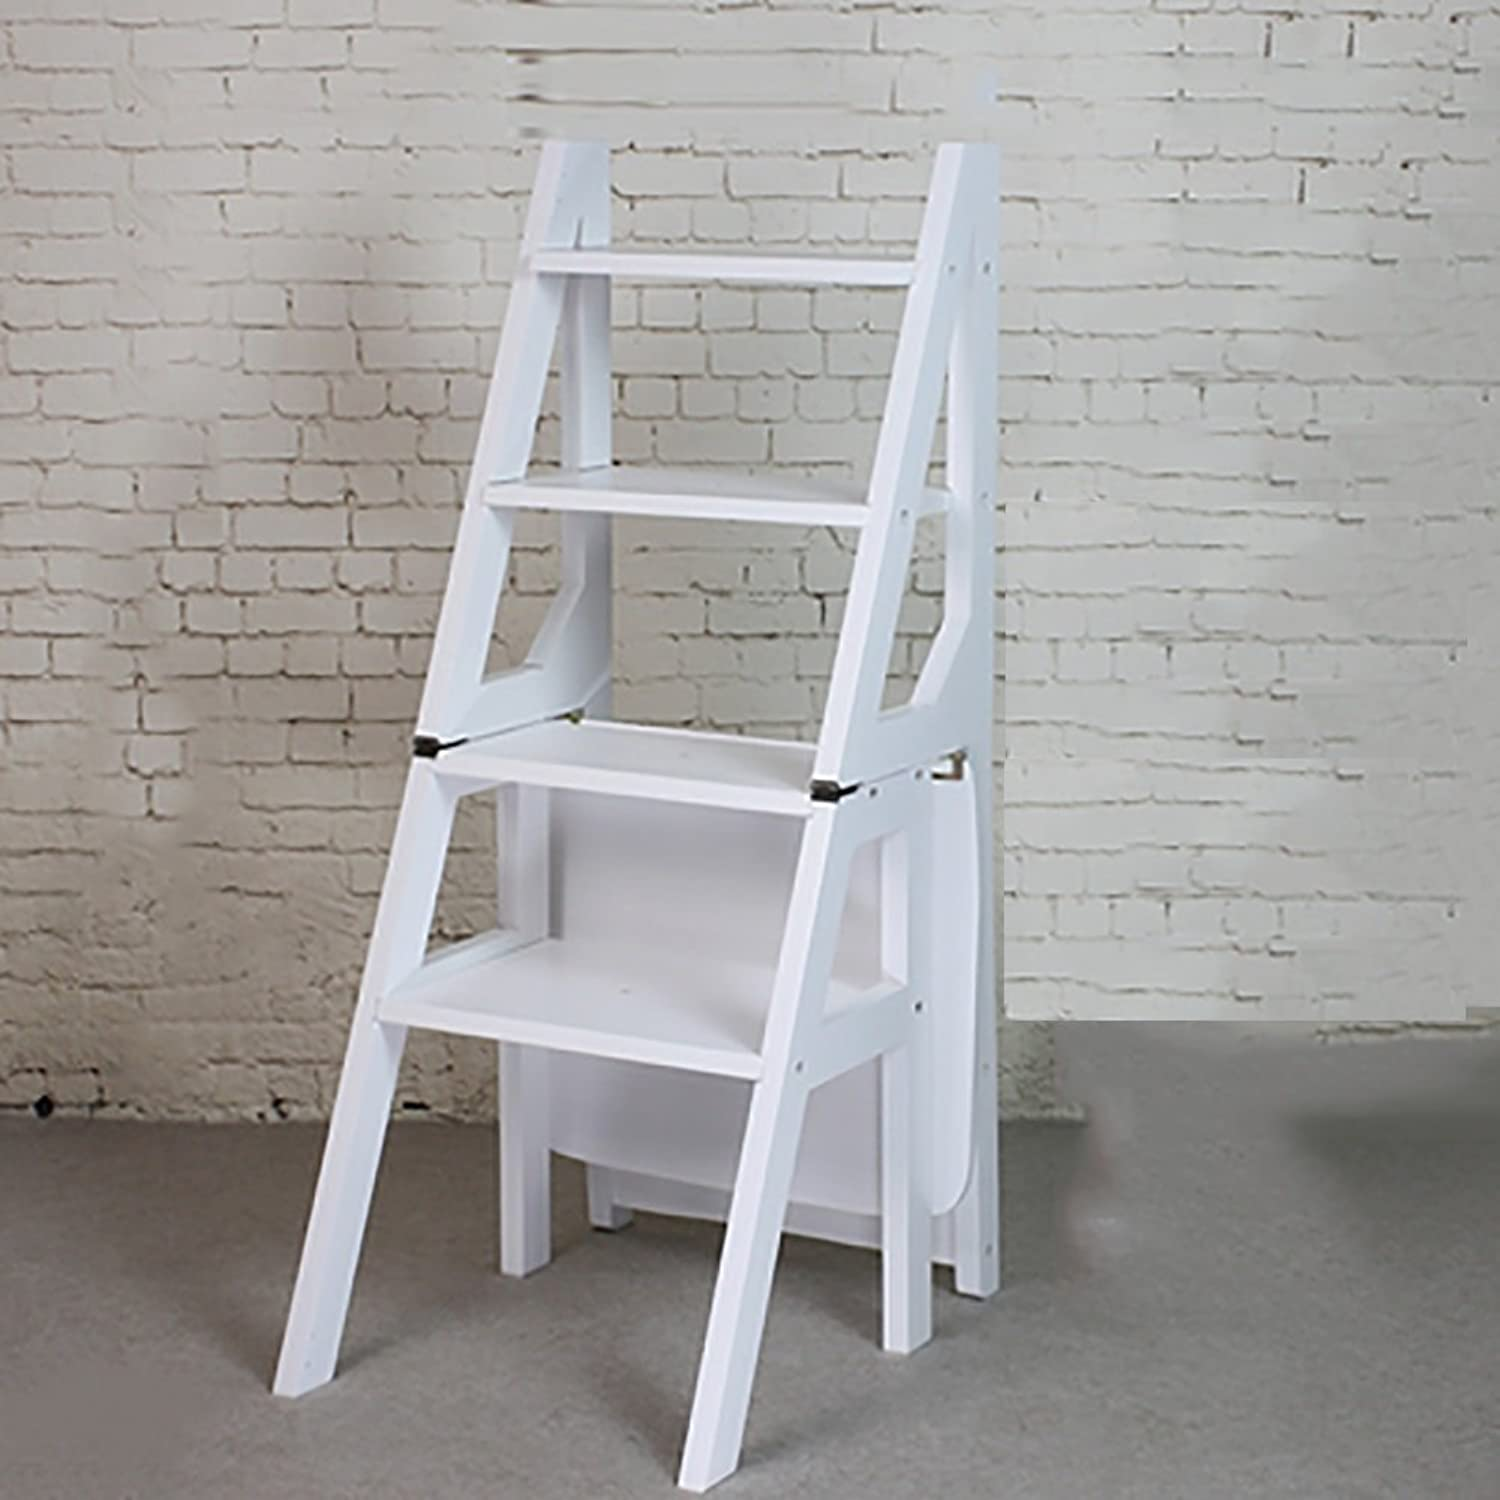 RMJAI Ladder Stool Solid Wood Step Stool Household Two Step Folding Ladder Kitchen Dual-use Three Layers Staircase Stool (color   White)